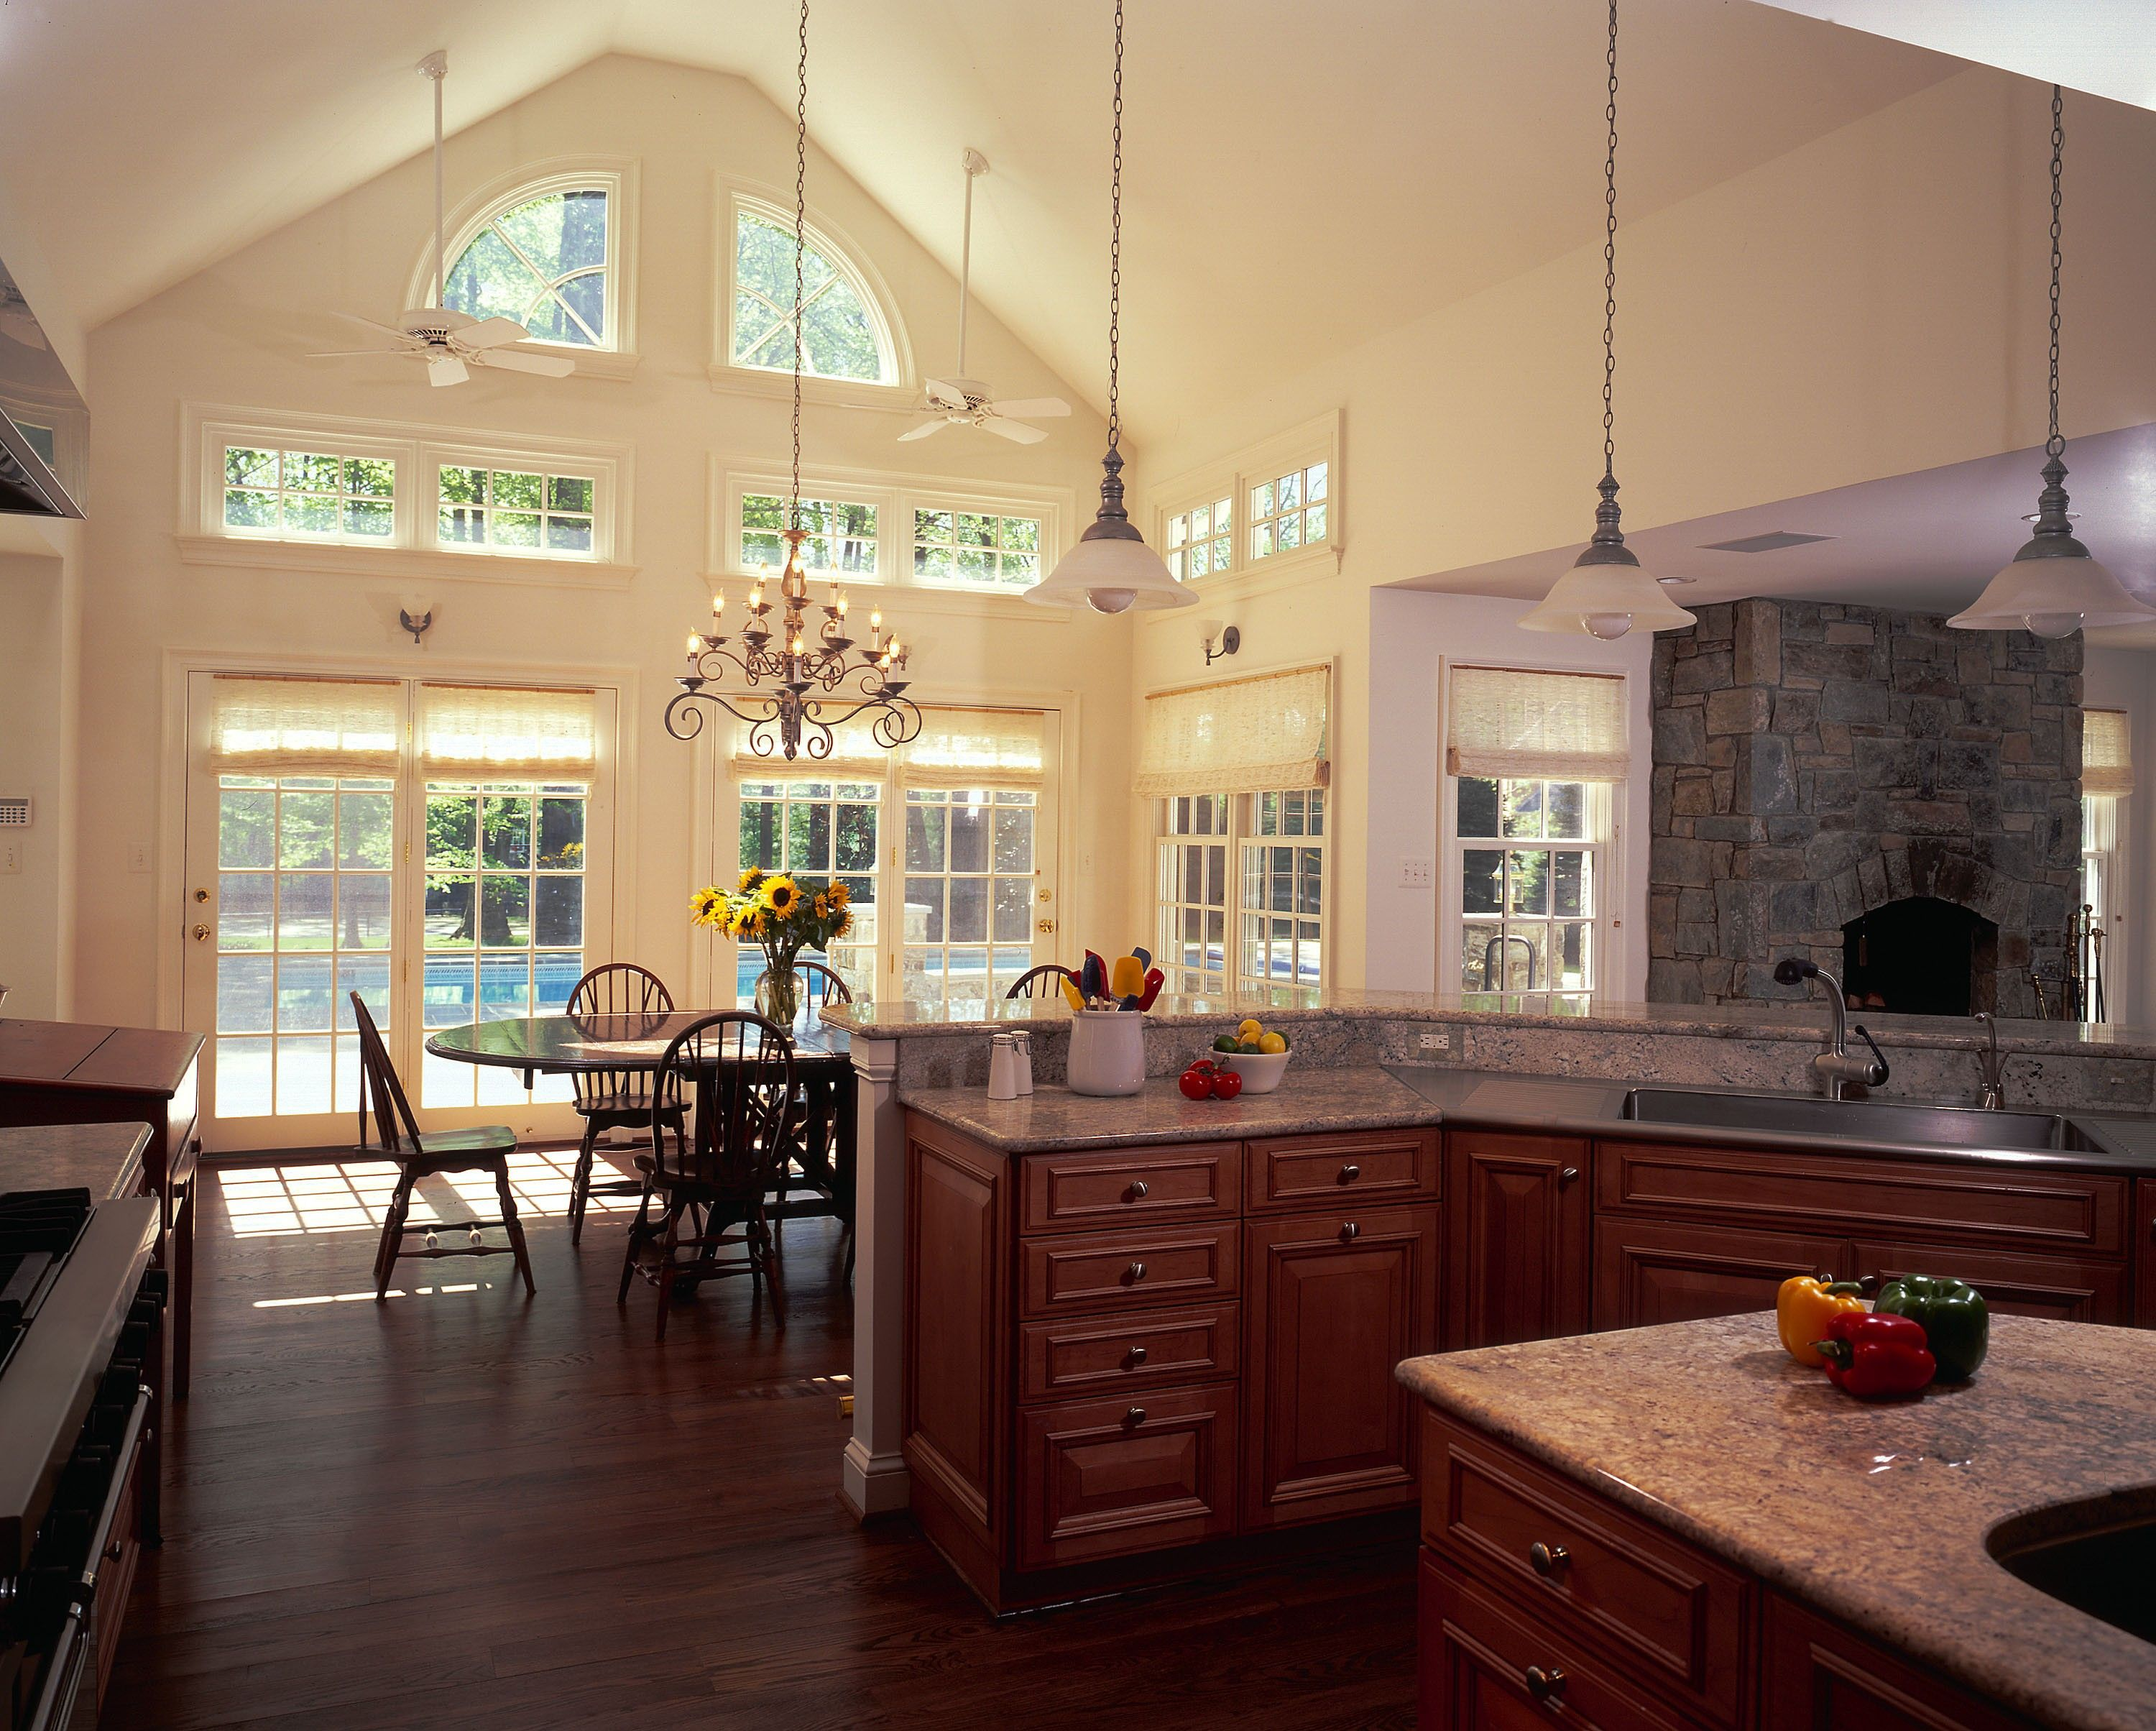 Kitchen With Vaulted Ceilings I Love The Vaulted Ceilings And Natural Sunlight Dream Home